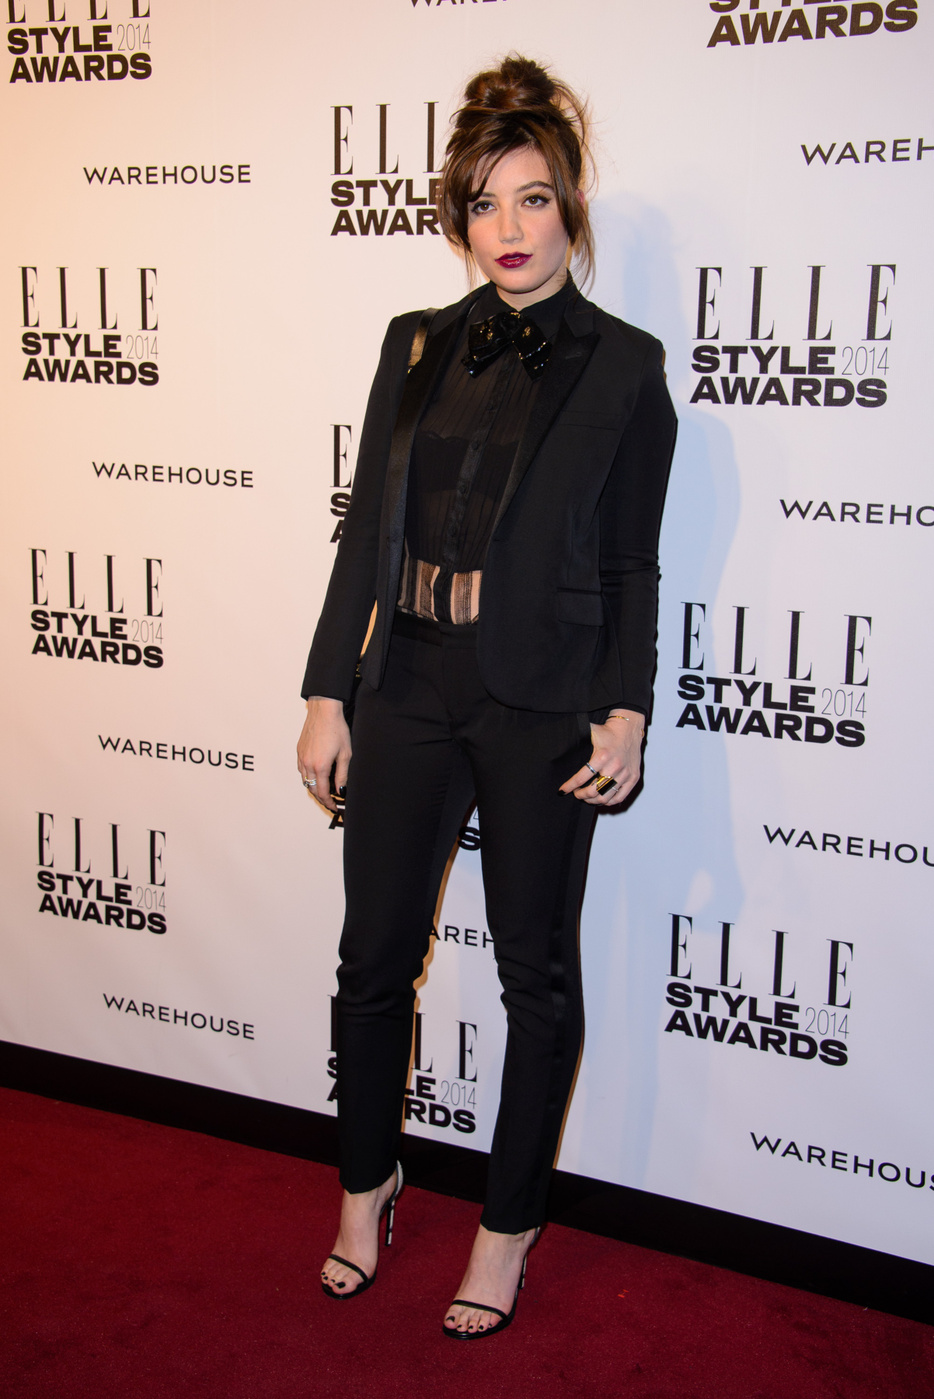 Daisy Lowe attends  the Elle Style Awards 2014 at one Embankment in London